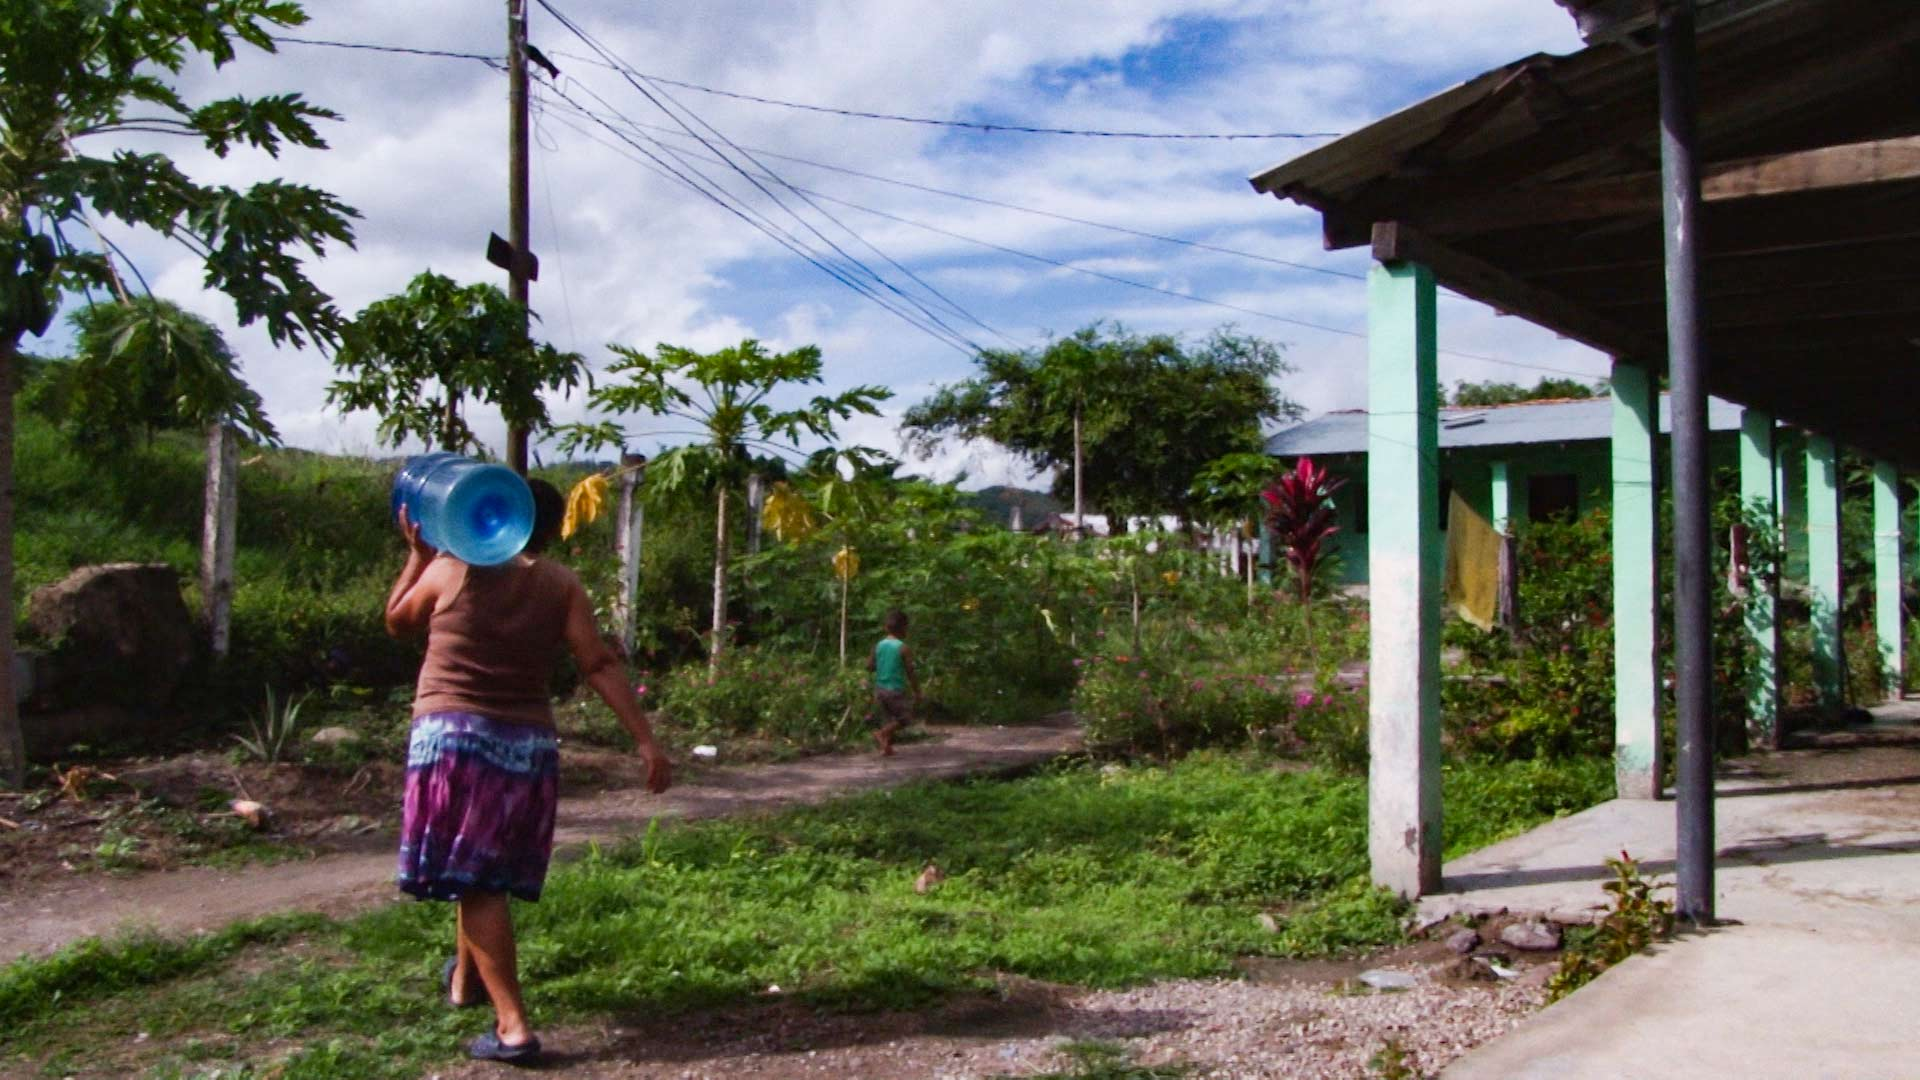 Two decades after Hurricane Mitch, clean and safe water supplies are still a challenge in rural Honduras.